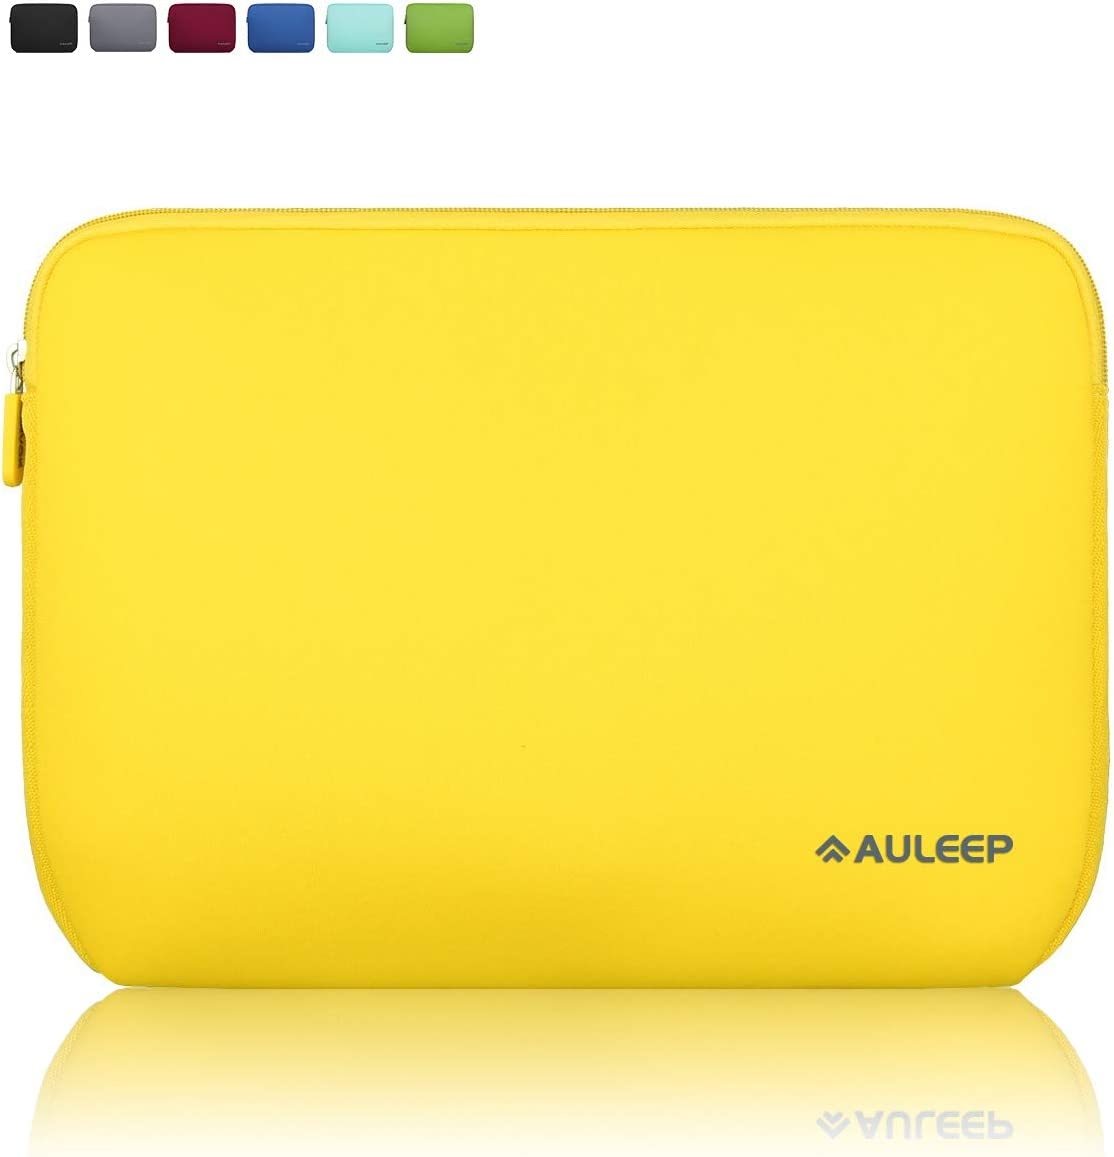 AULEEP 13-14 Inch Laptop Sleeves, Neoprene Notebook Computer Pocket Tablet Carrying Sleeve/Water-Resistant Compatible Laptop Sleeve for Acer/Asus/Dell/Lenovo/HP, Yellow